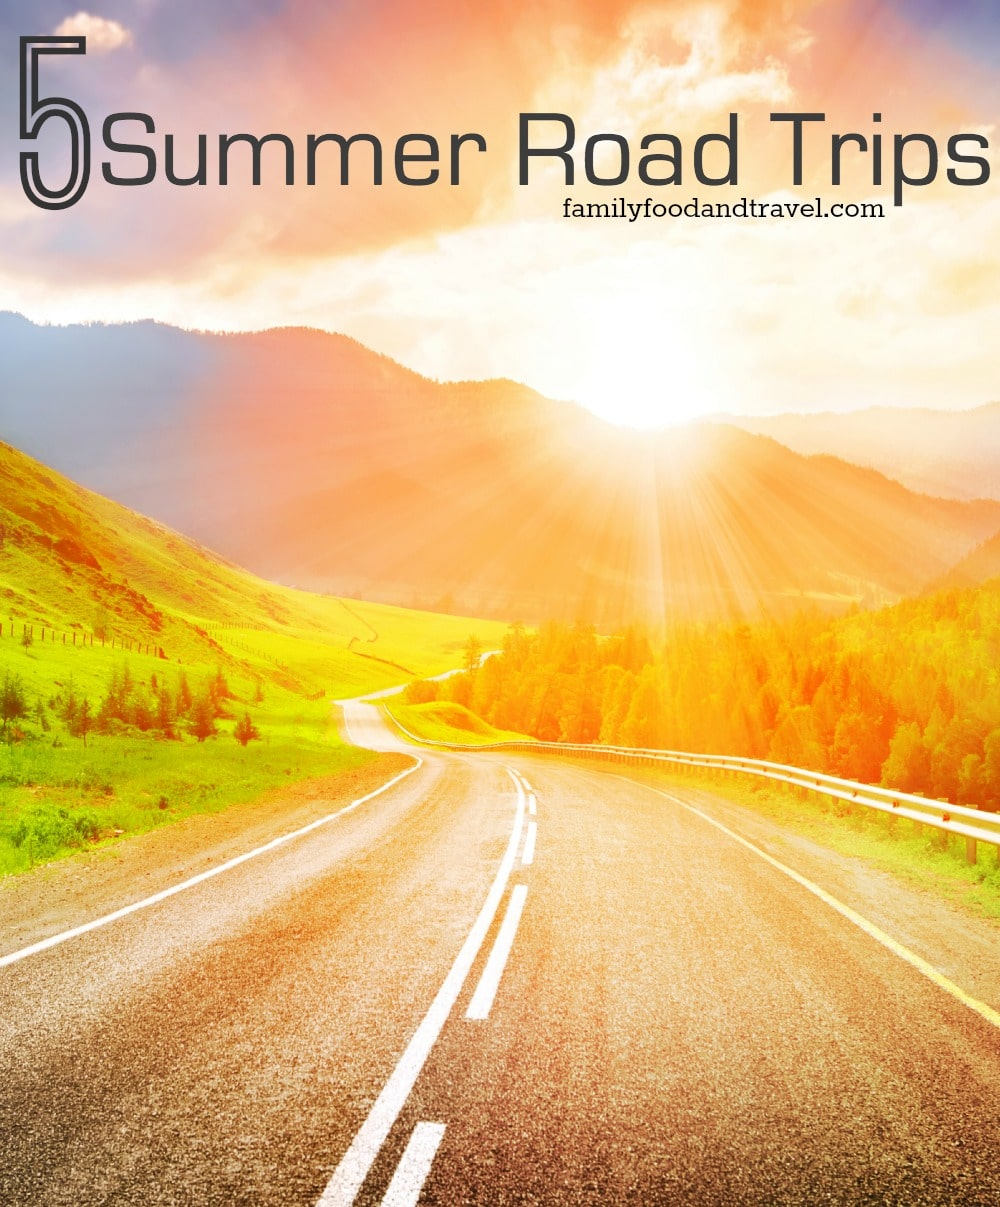 5 Summer Road Trips